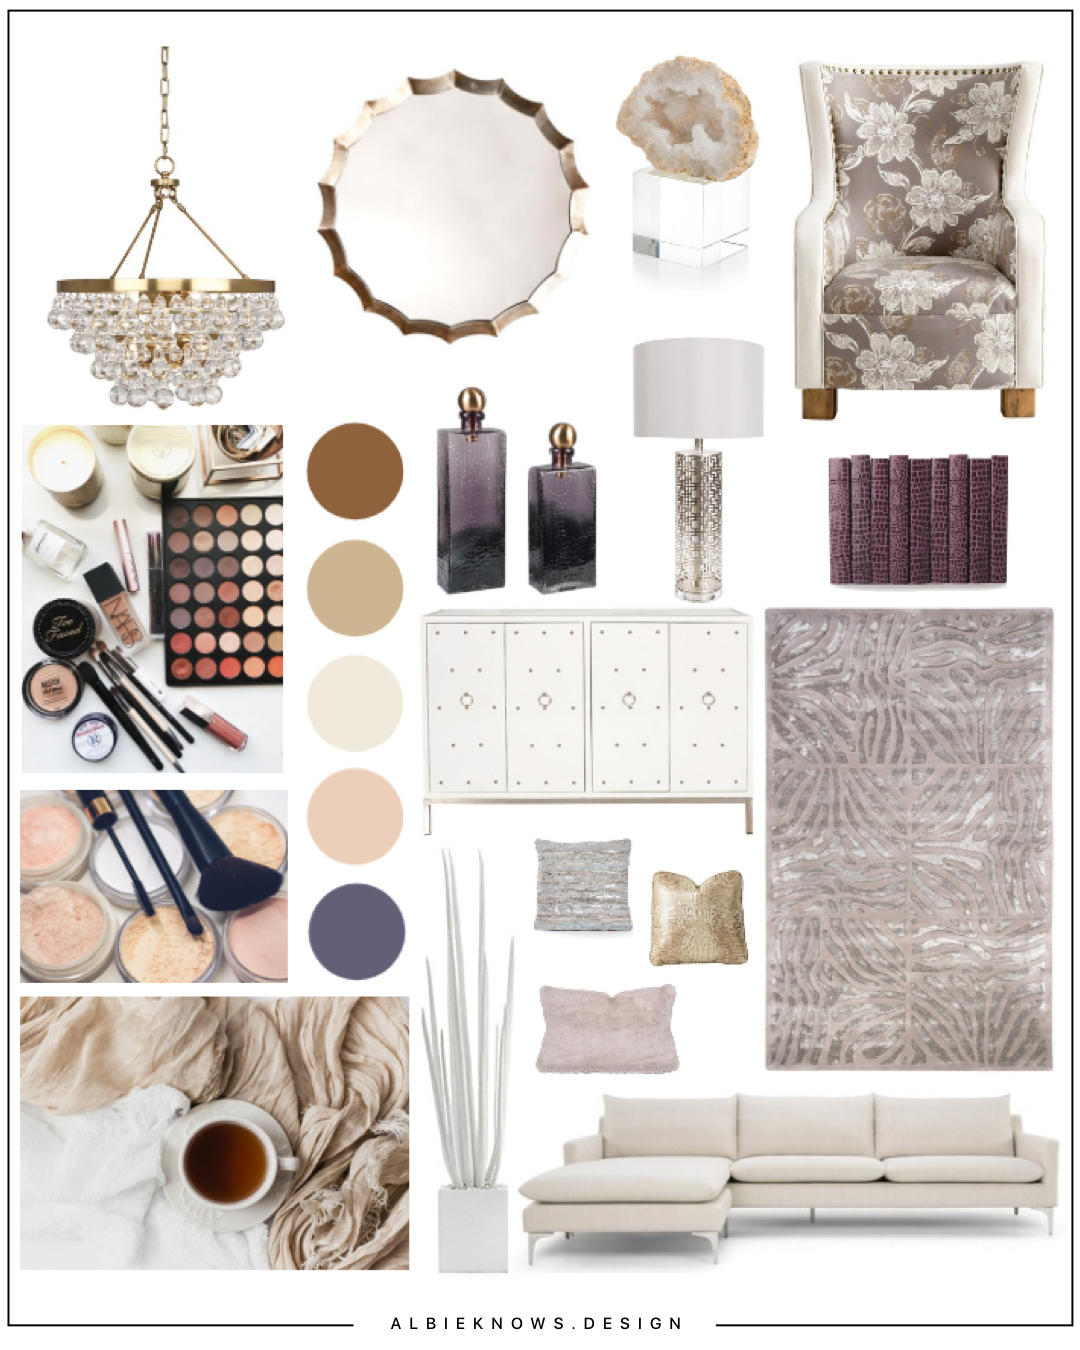 Everyday Hygge Glam Living - This design features a fusion of a Hygge-inspired aesthetic & elegant sophistication, creating a space that is equal parts comfort & glam.